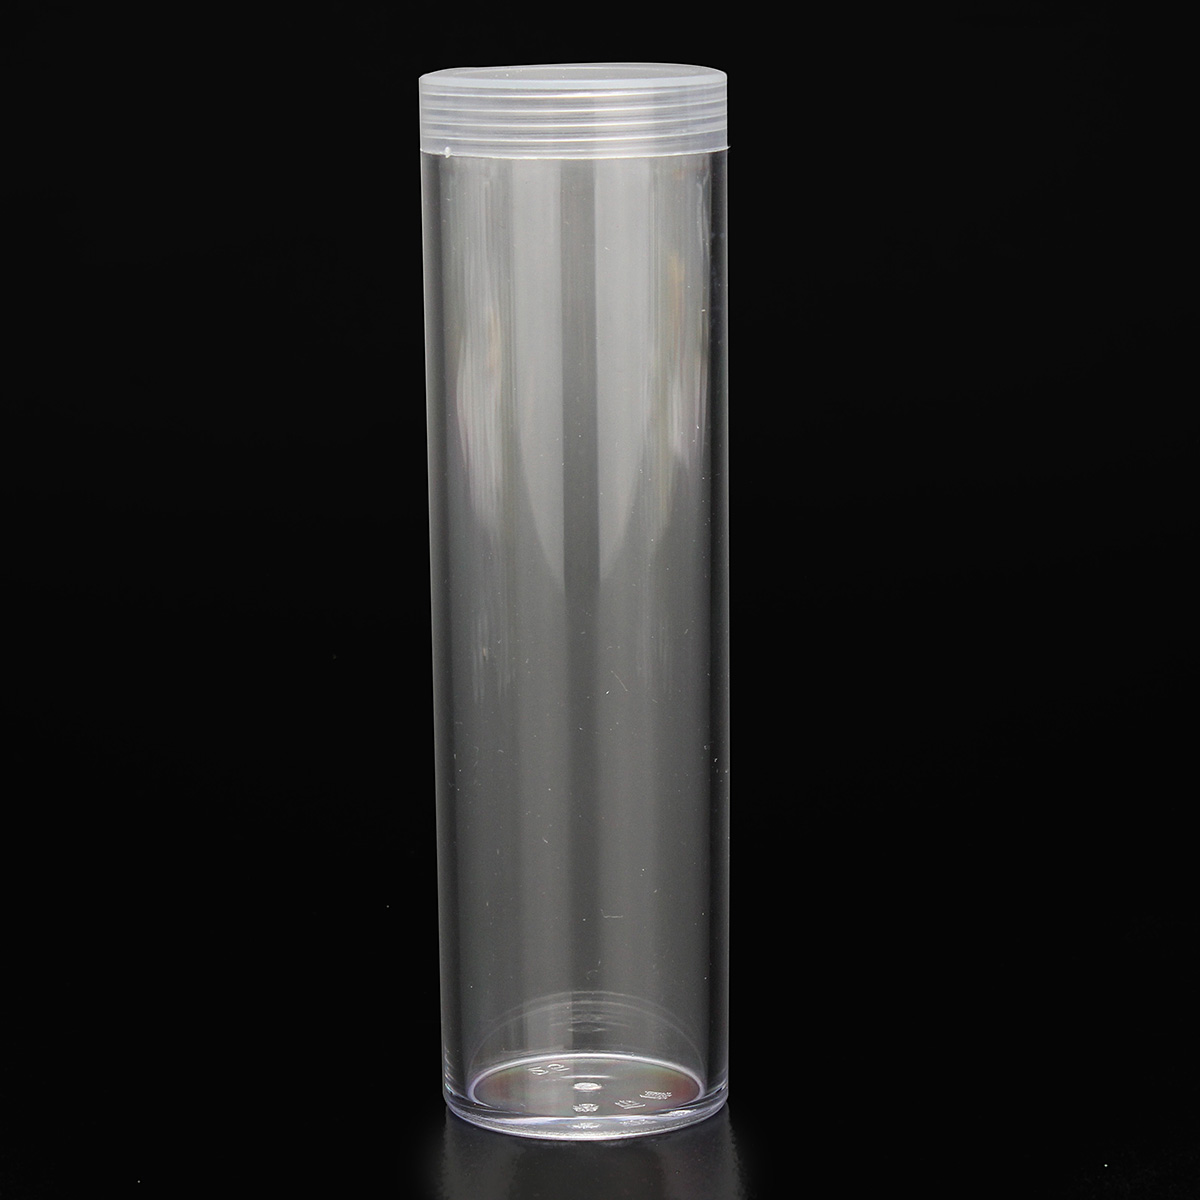 10Pcs/Set 25mm Round Clear Plastic Coin Tube Coin Holder Container for Quarter Dollar Storage Tube Screw